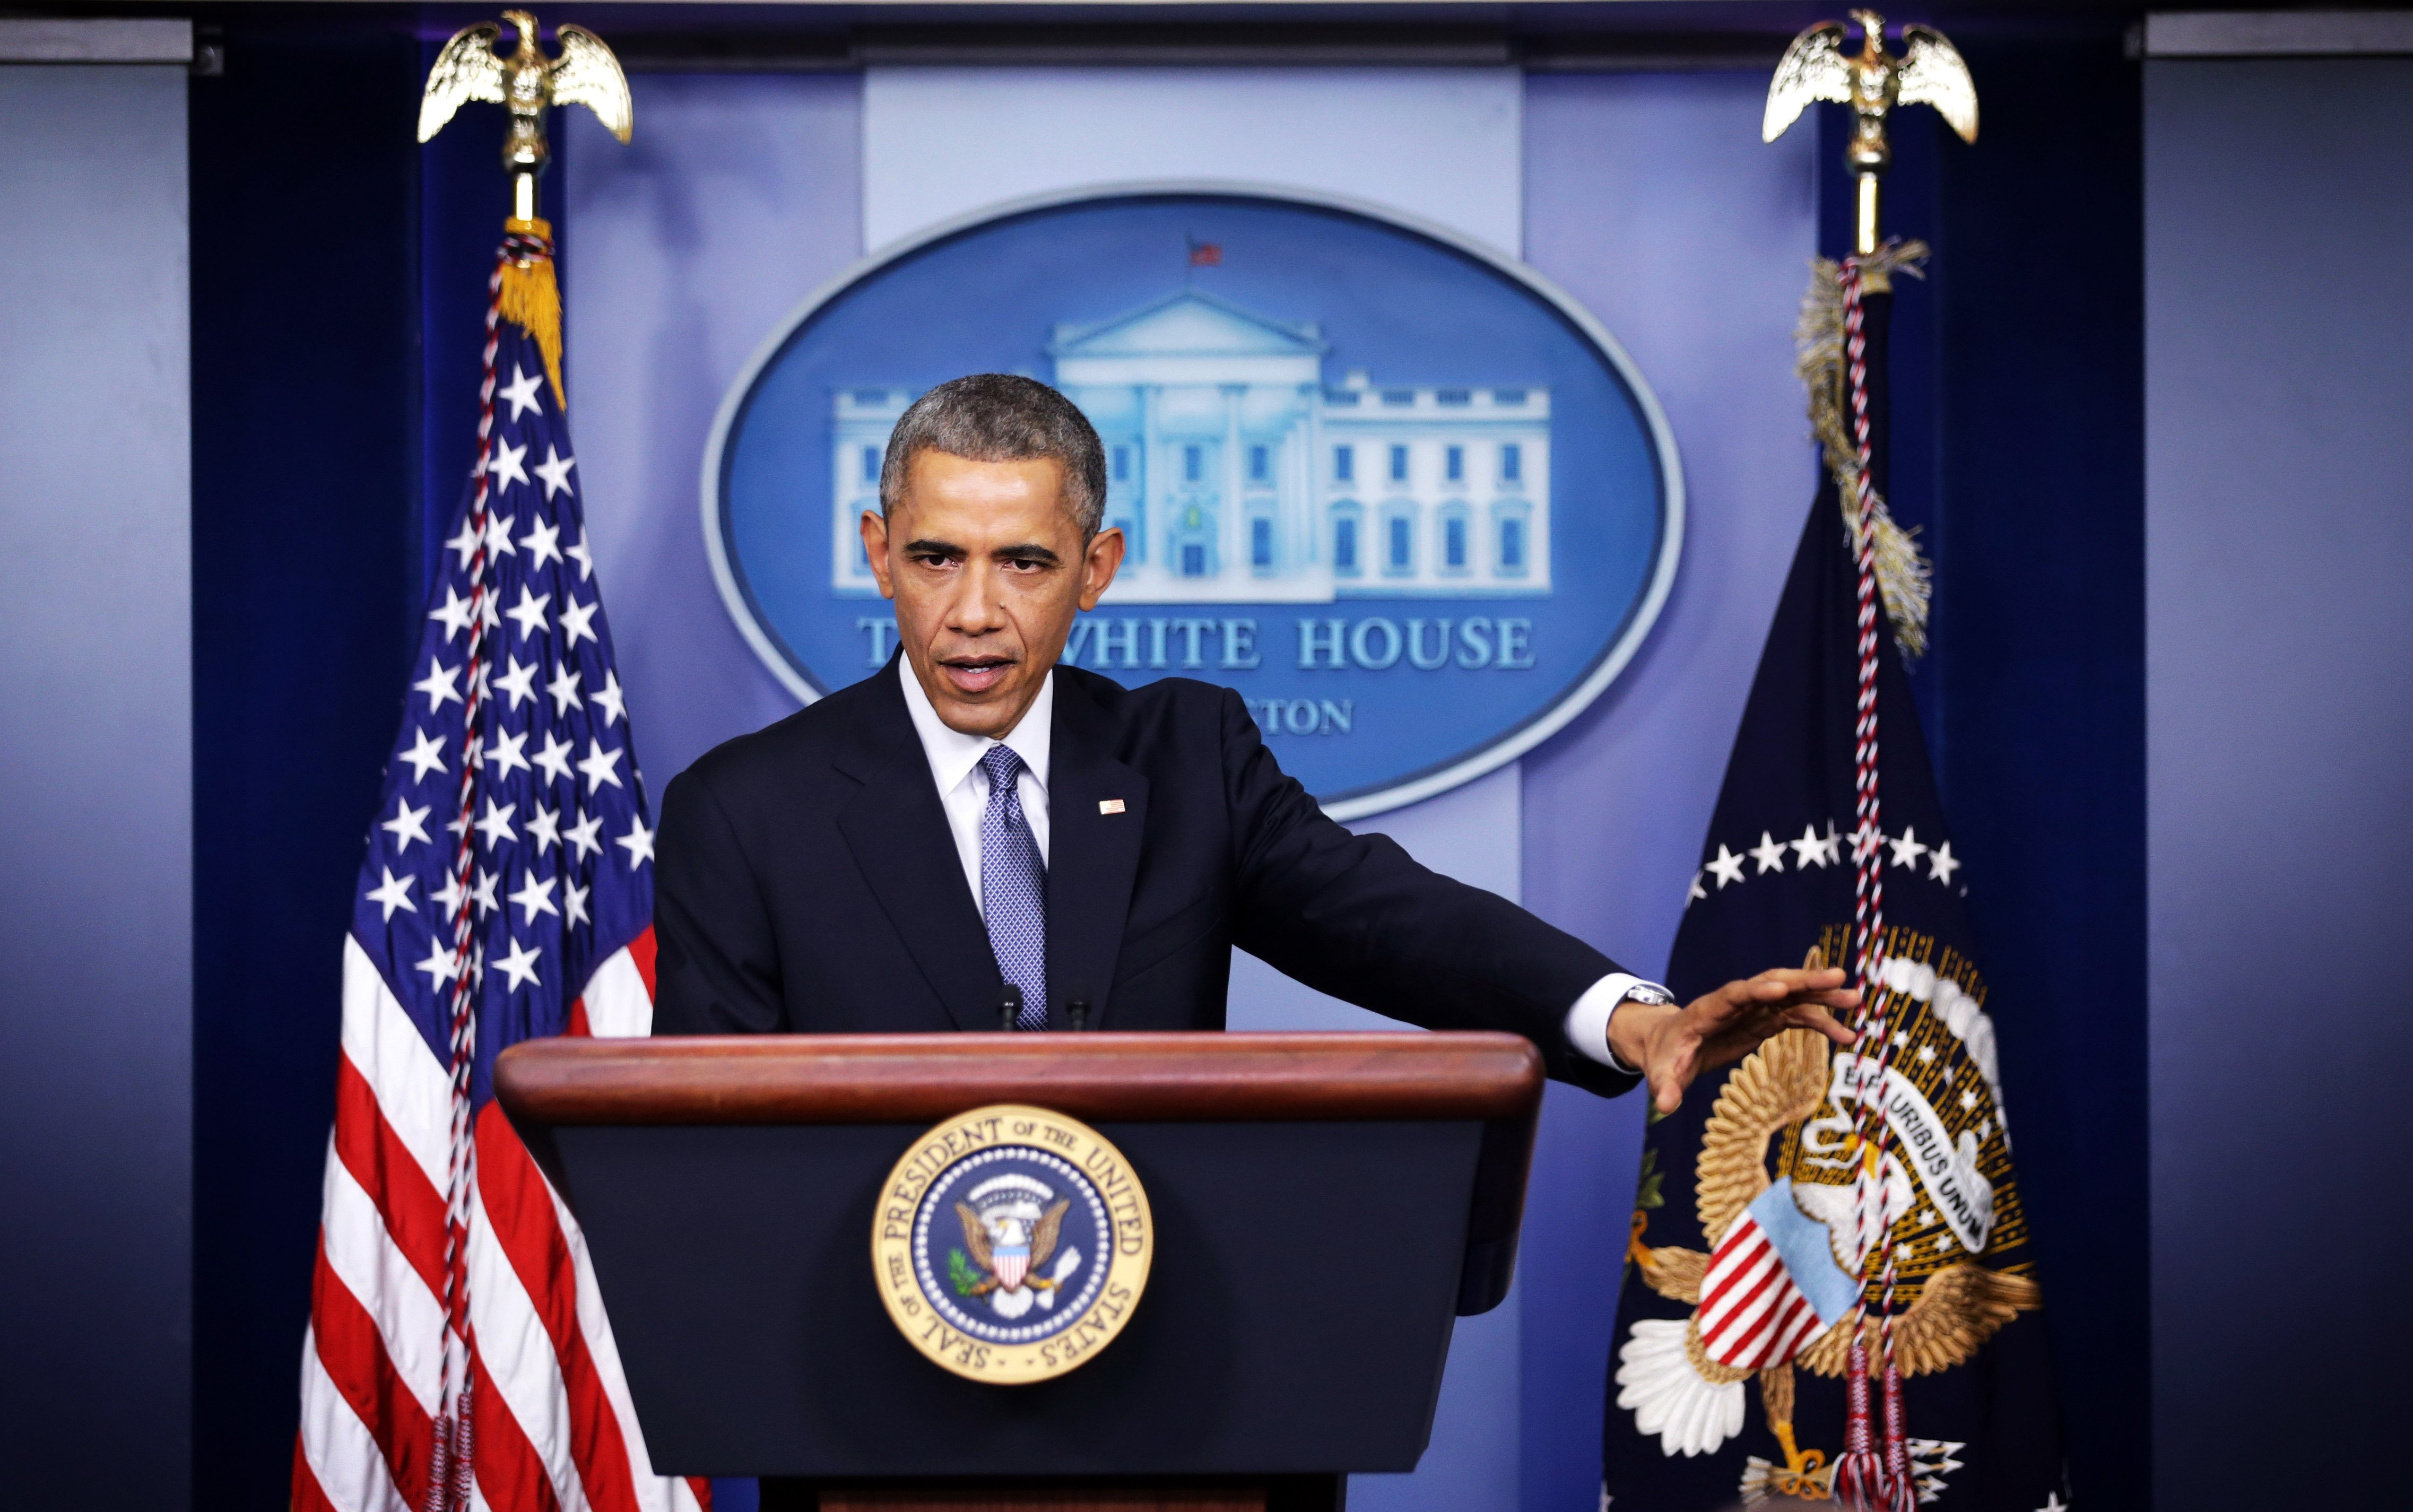 WASHINGTON, DC - DECEMBER 19:  U.S. President Barack Obama speaks during his speech to members of the media during his last news conference of the year in the James Brady Press Briefing Room of the White House December 19, 2014 in Washington, DC. President Obama faced questions on various topics including the changing of Cuba policy, his executive action on immigration and the Sony hack.  (Photo by Alex Wong/Getty Images)